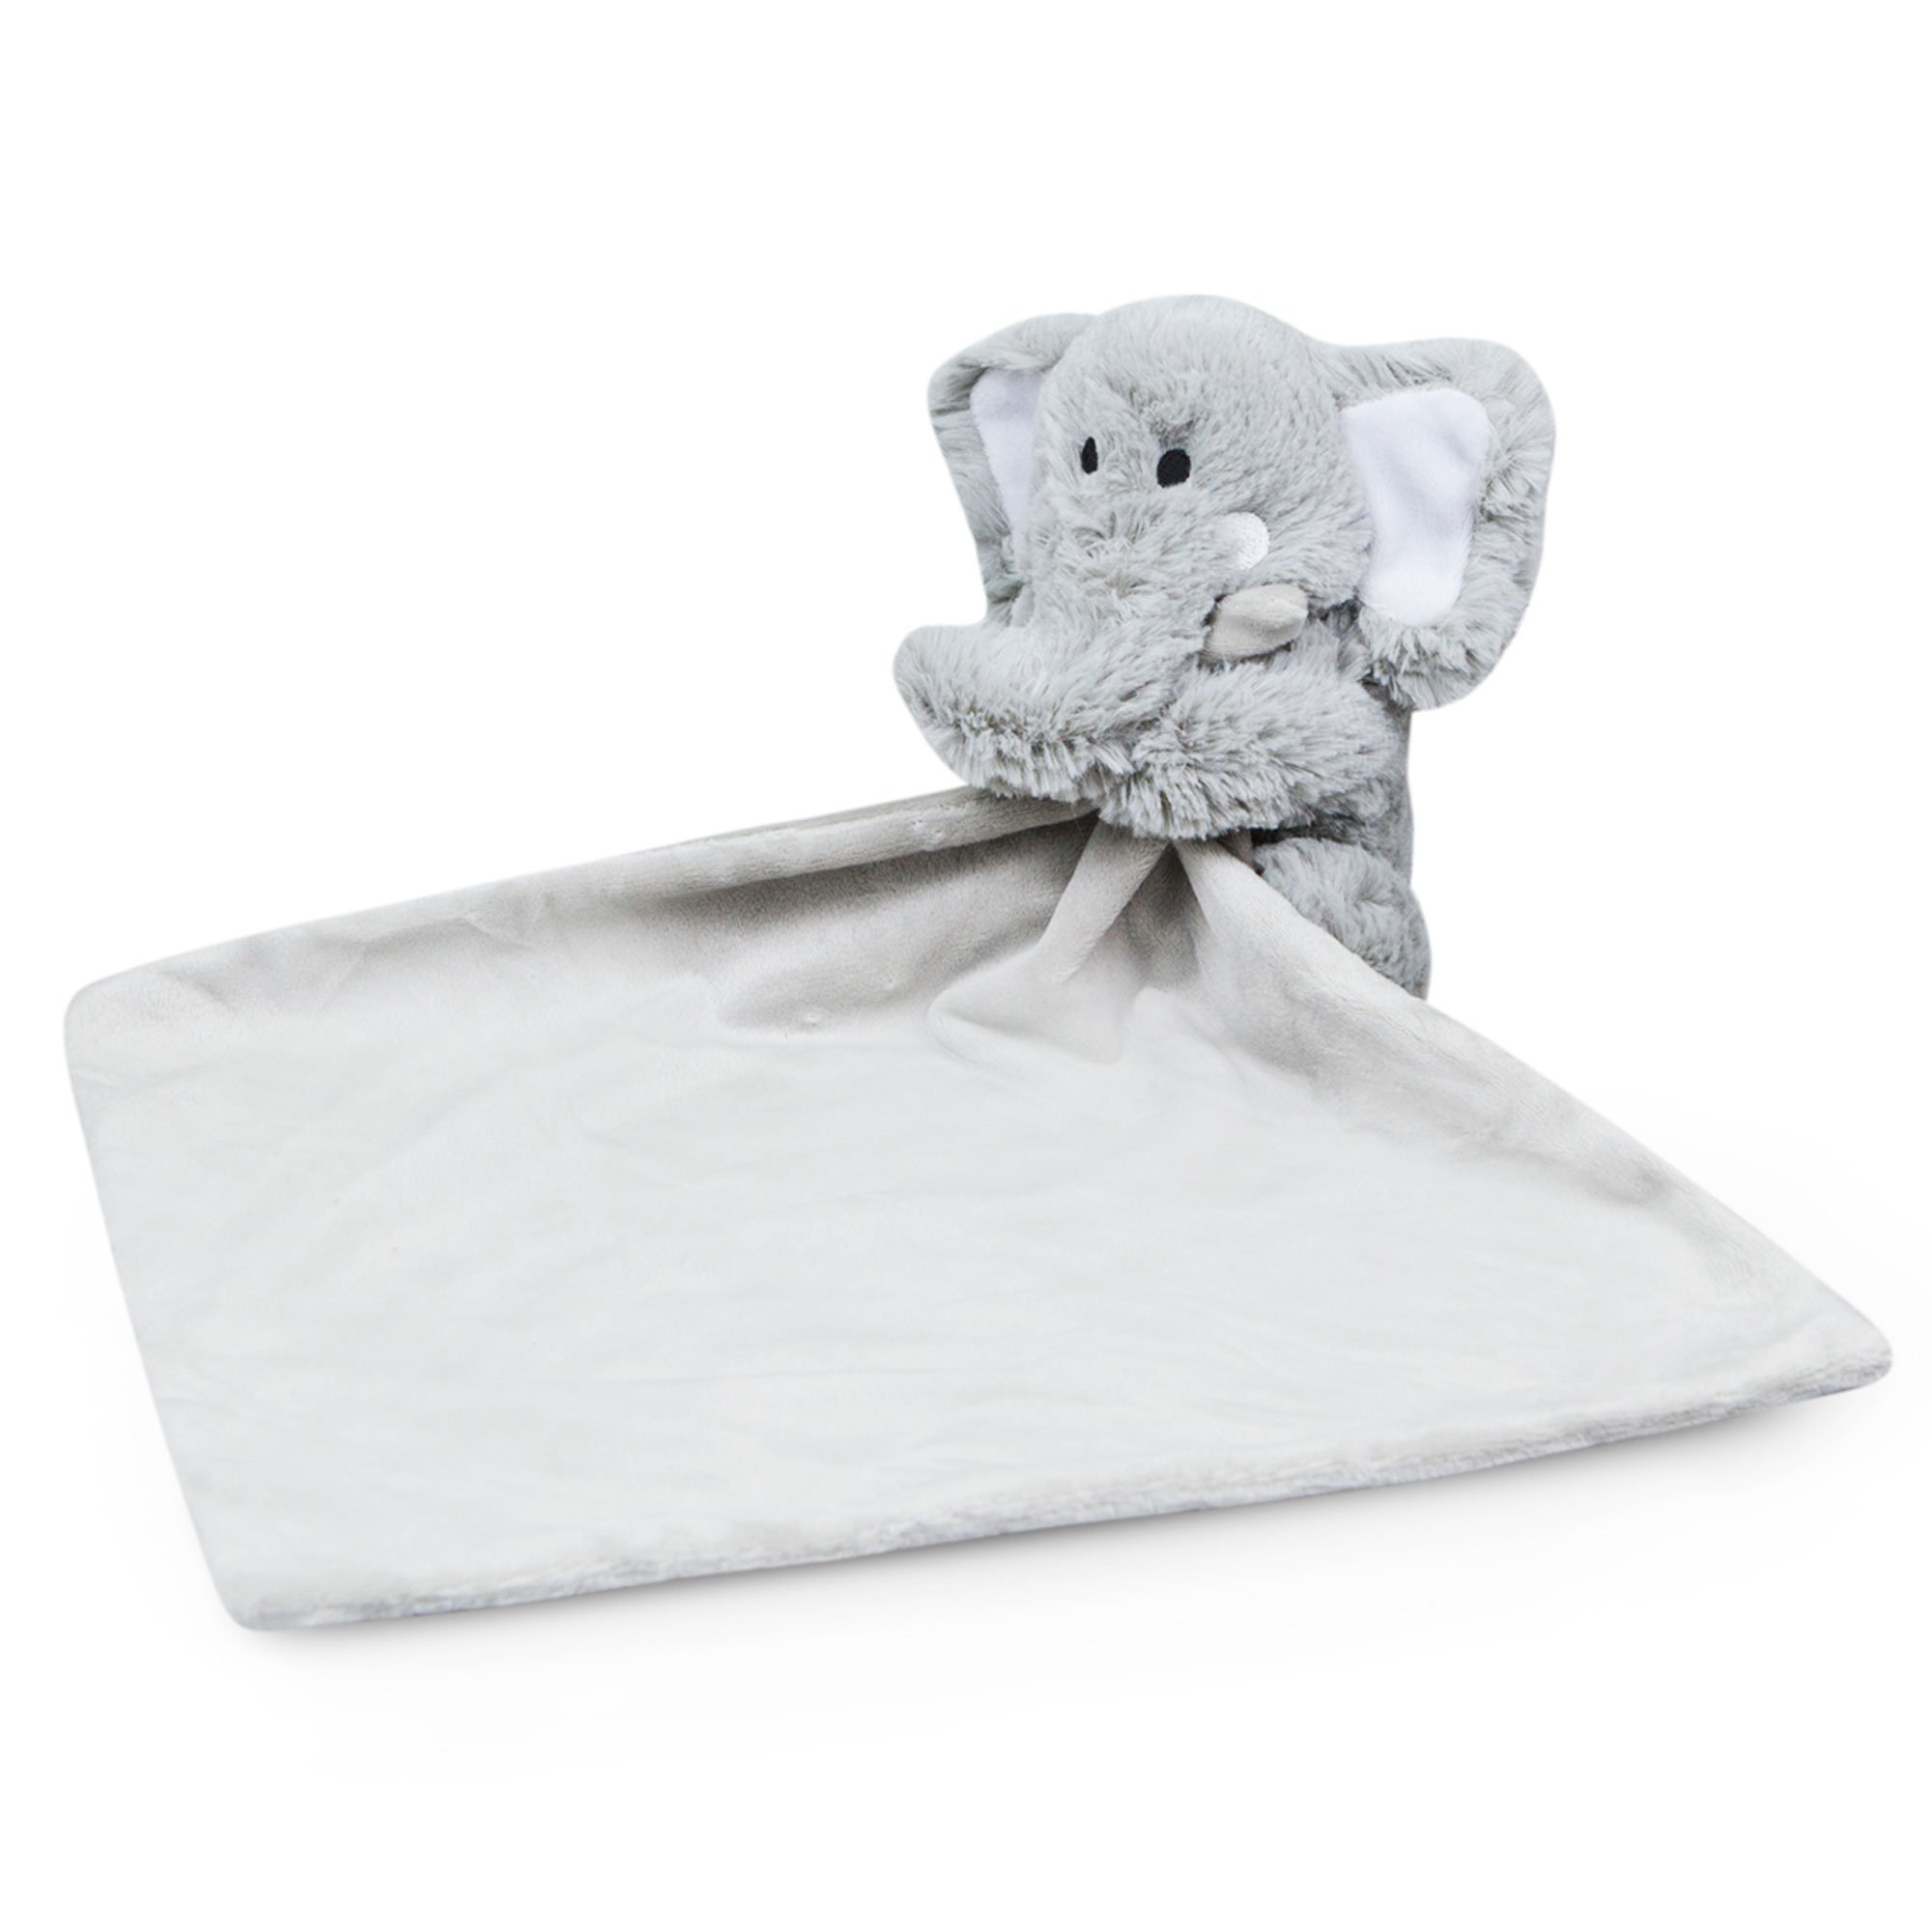 Waddle Favorite Plush Elephant Baby Security Blanket Best Lovey Stuffed Animal Rattle Toy Nursery Decor Grey (Gray)